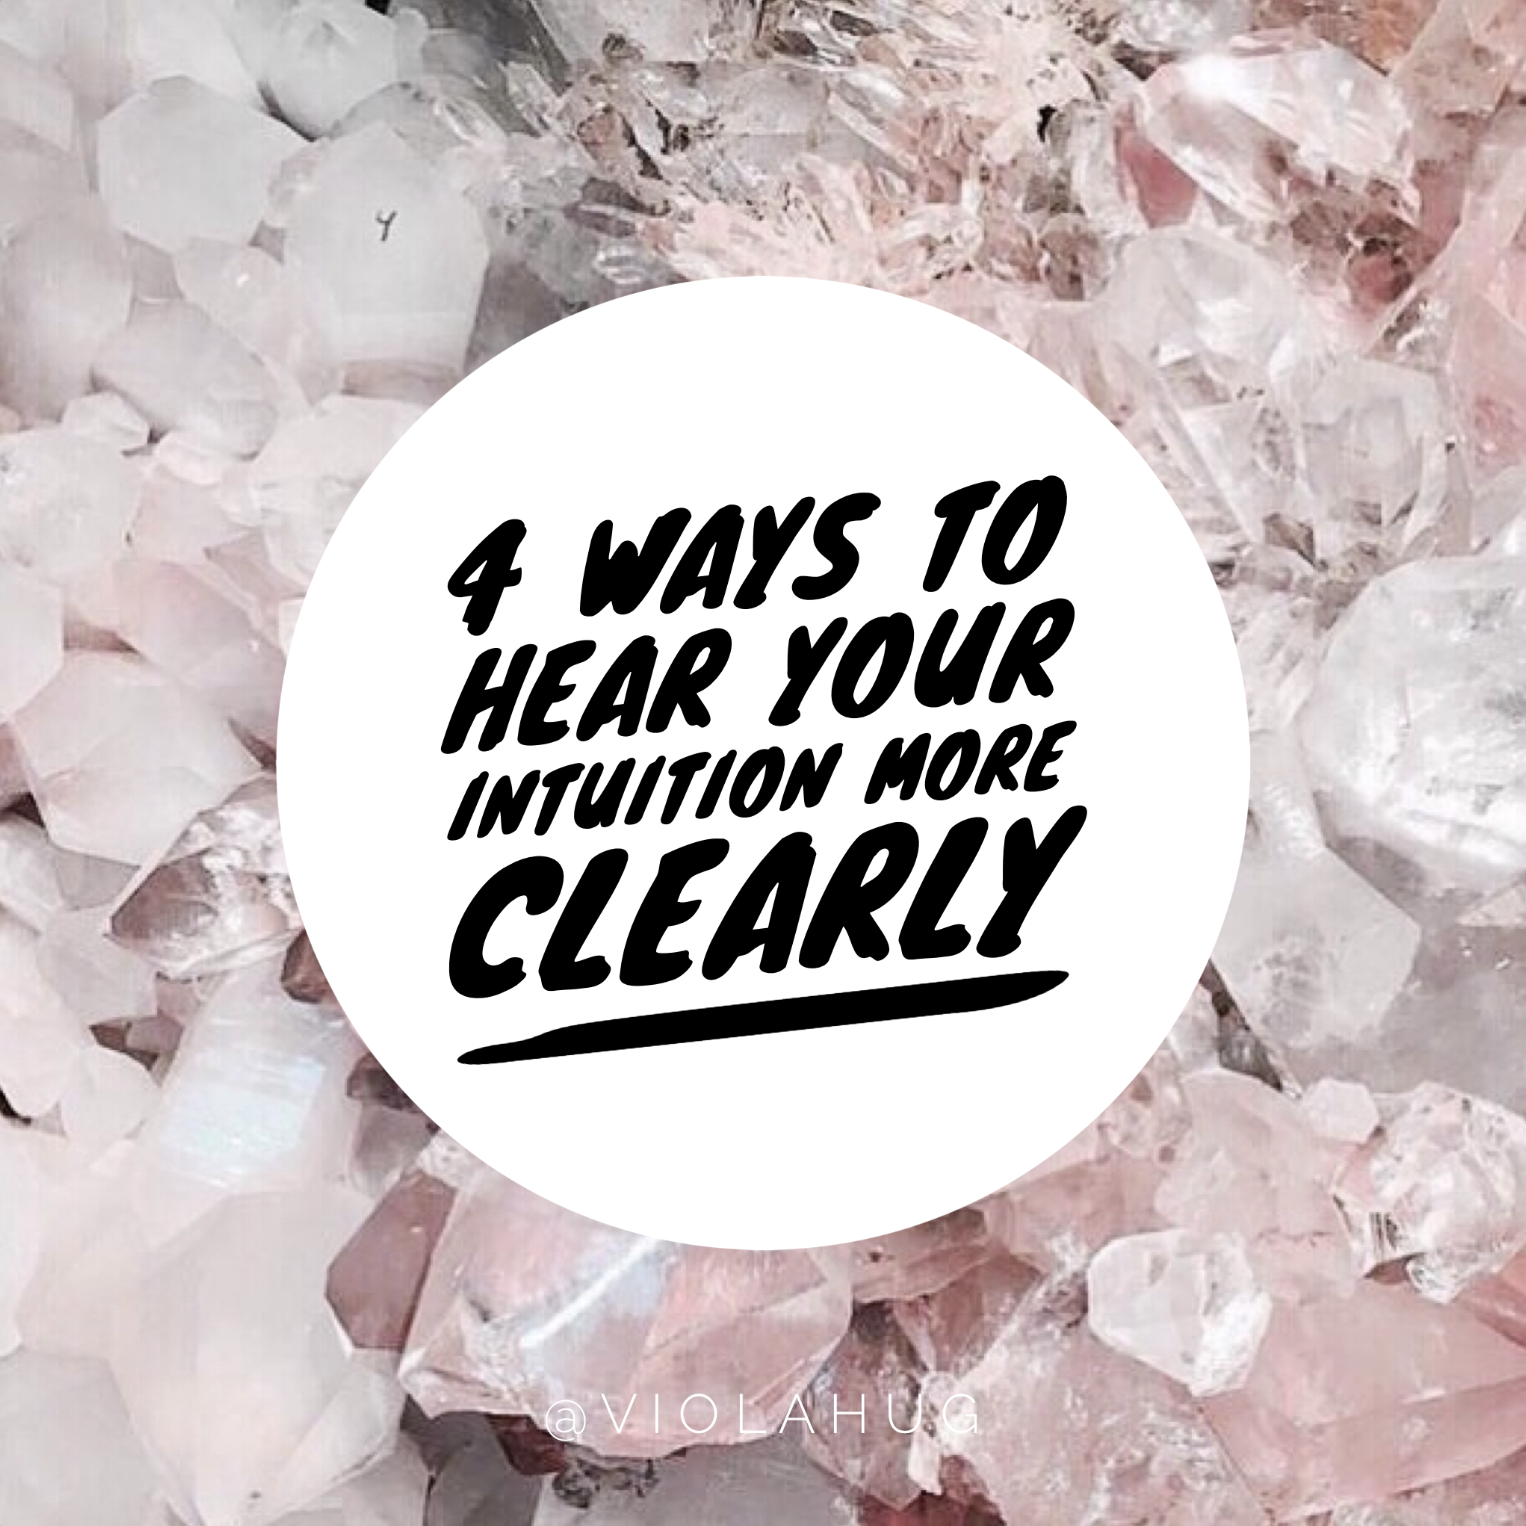 4 ways to hear your intuition more clearly